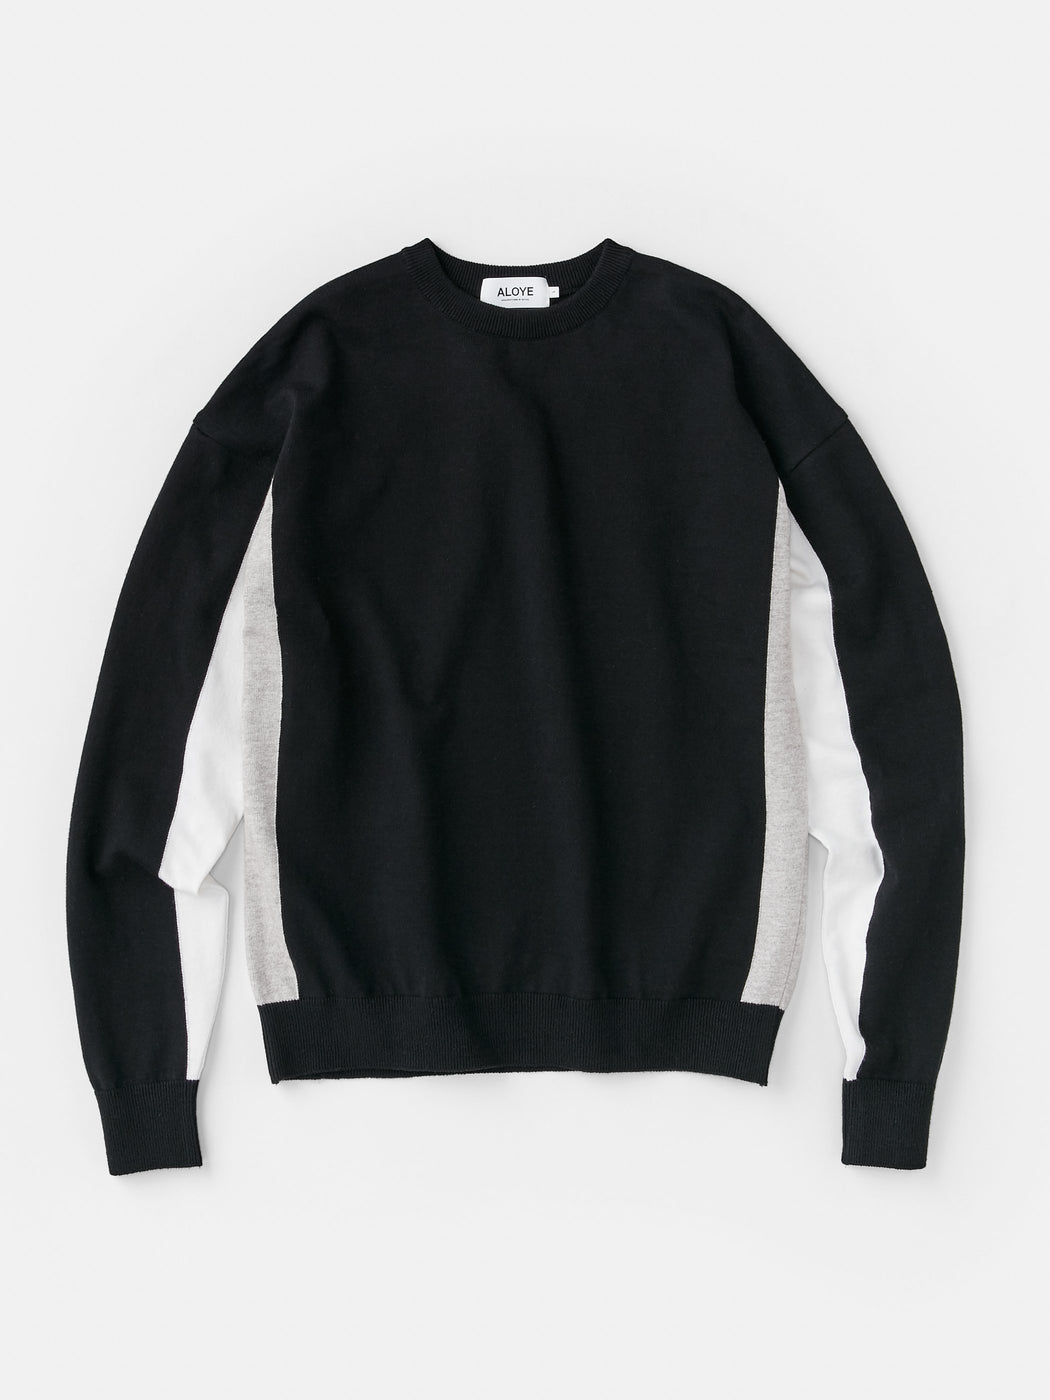 ALOYE G.F.G.S. Men's Cotton Knitted Sweater Black-Heather Gray